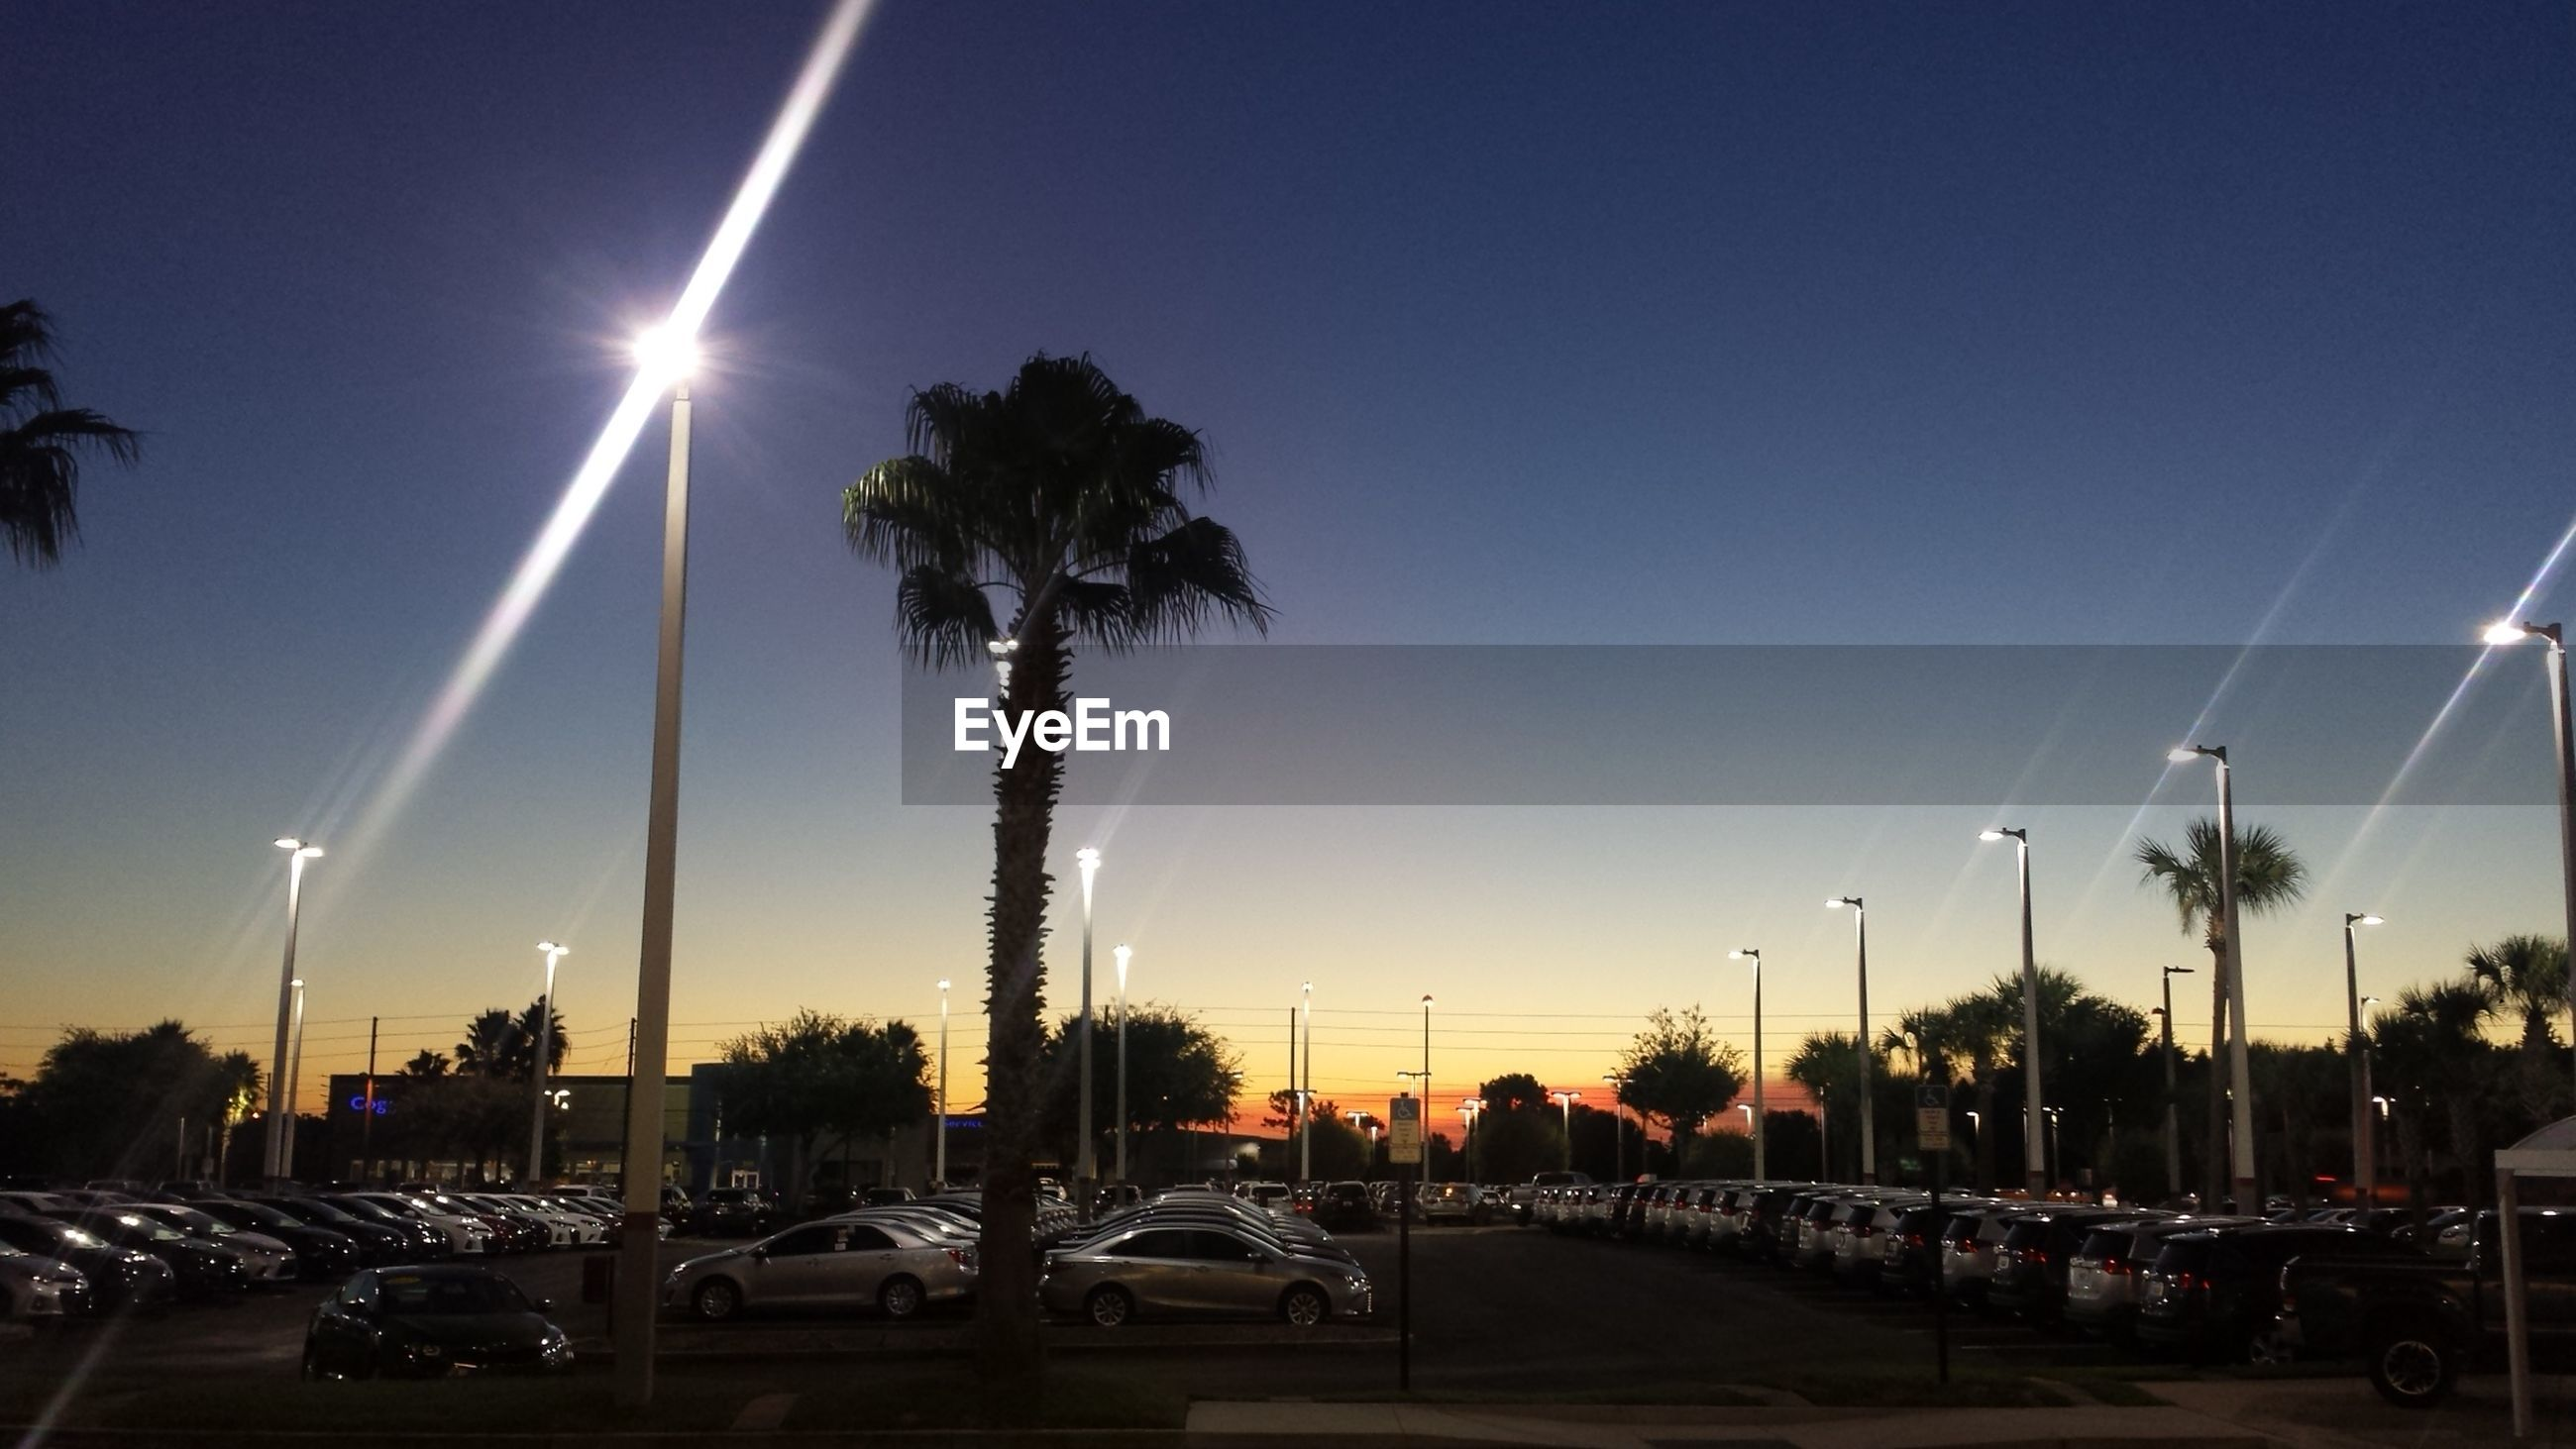 Cars in illuminated parking lot against sky during sunset